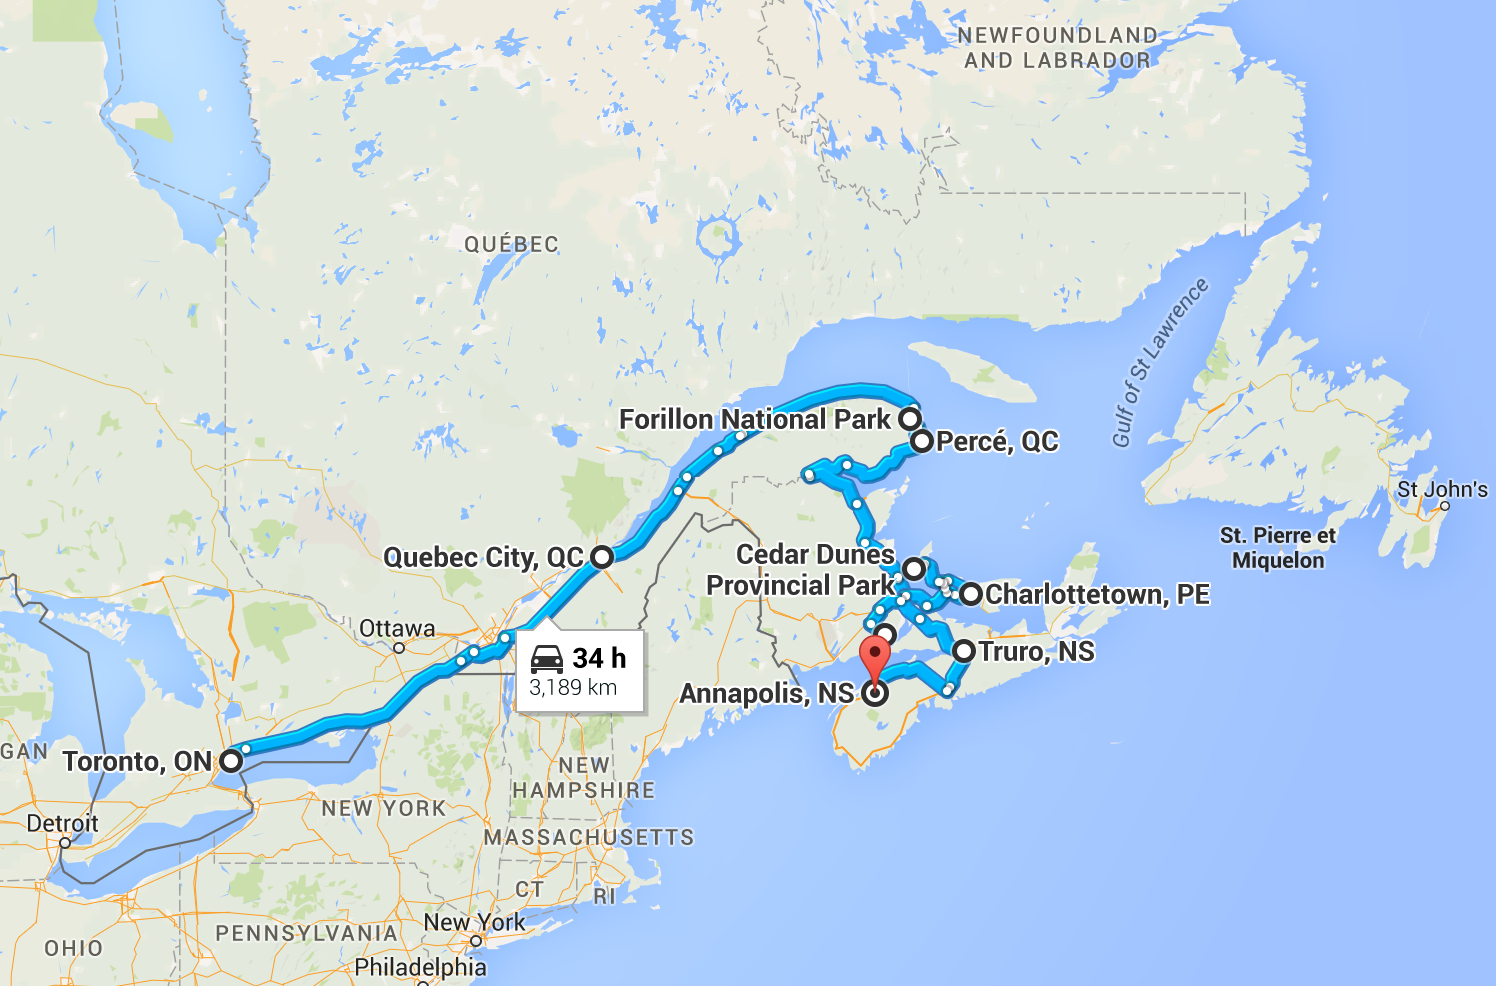 Approximate driving to this point.  Toronto, ON to Annapolis Valley, NS